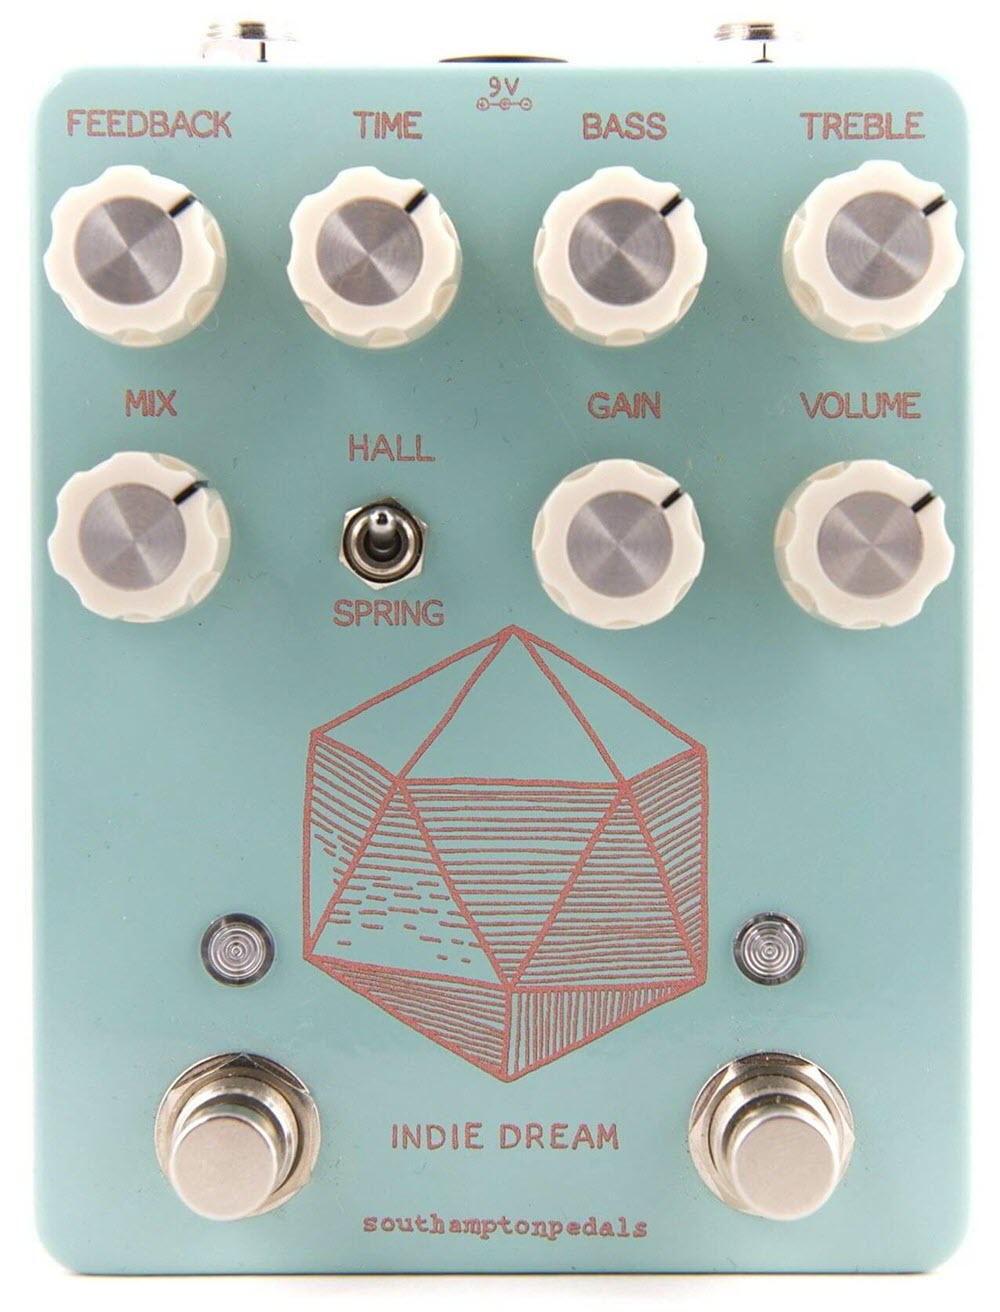 Southampton Indie Dream Overdrive Delay Reverb Pedal (Blue)